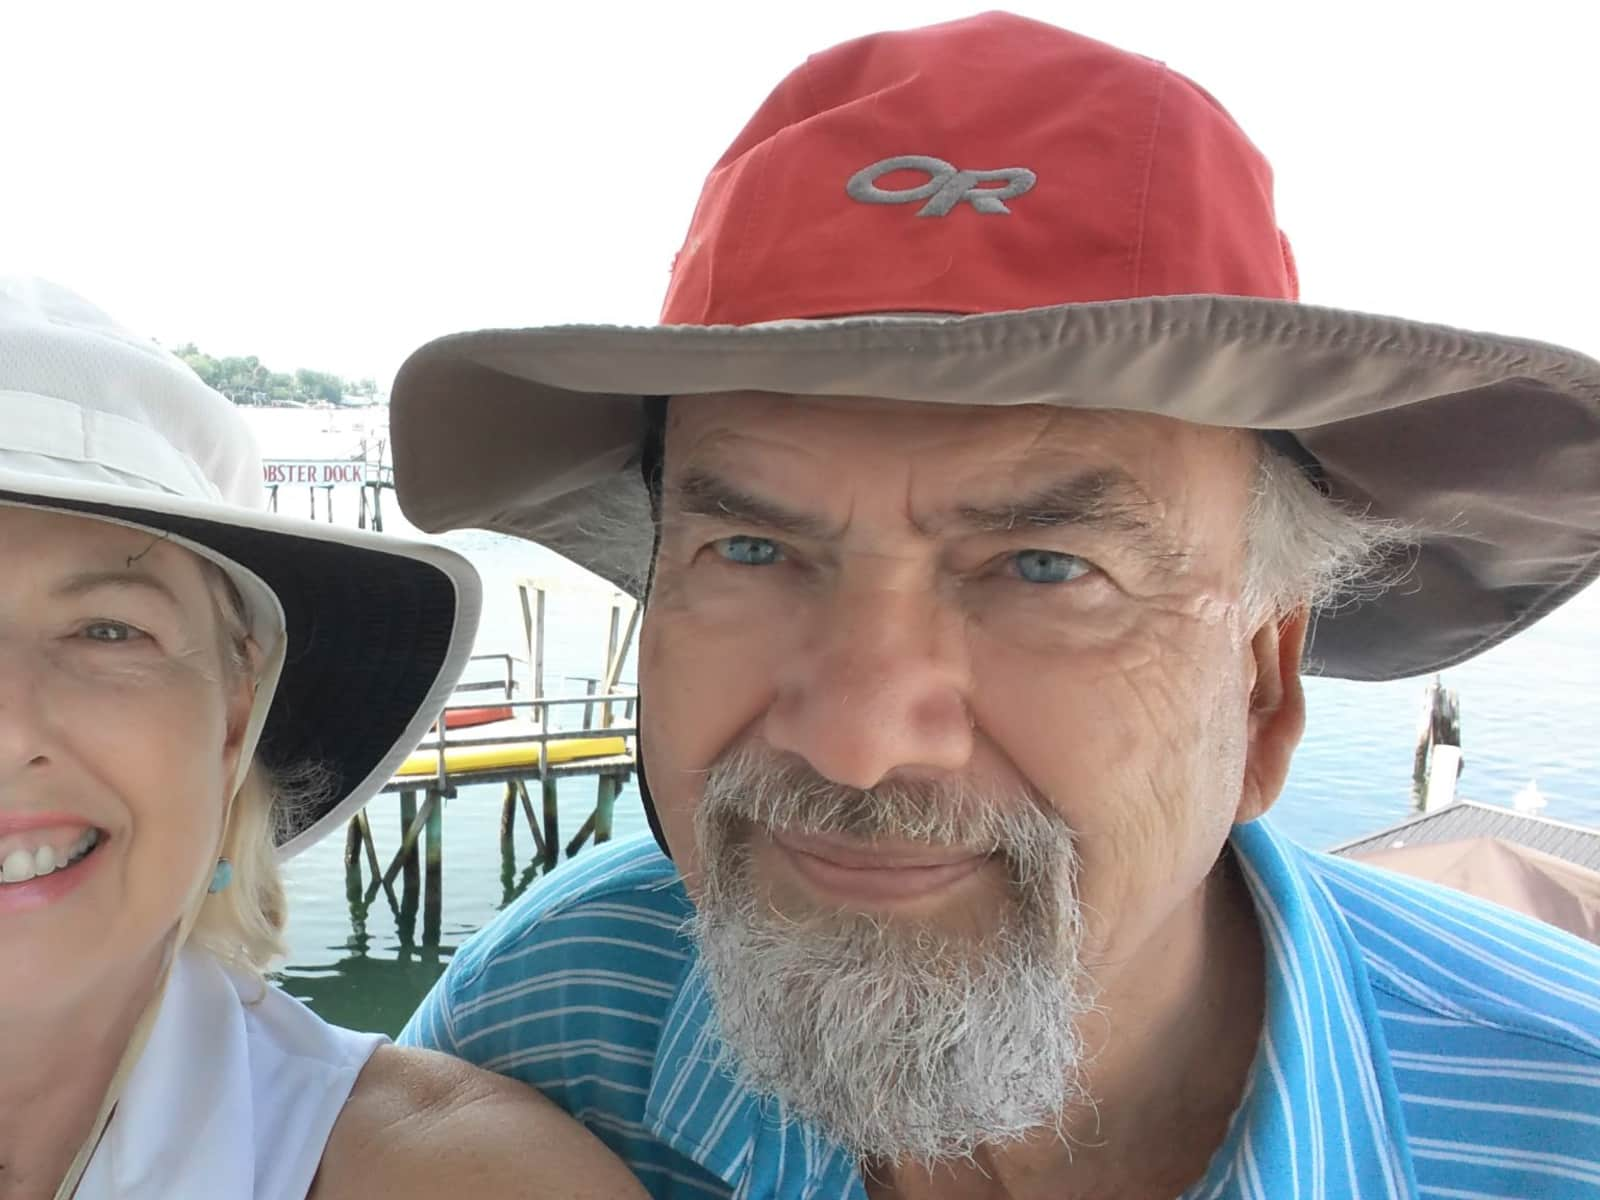 Jeffrey & Laura from Chestertown, Maryland, United States